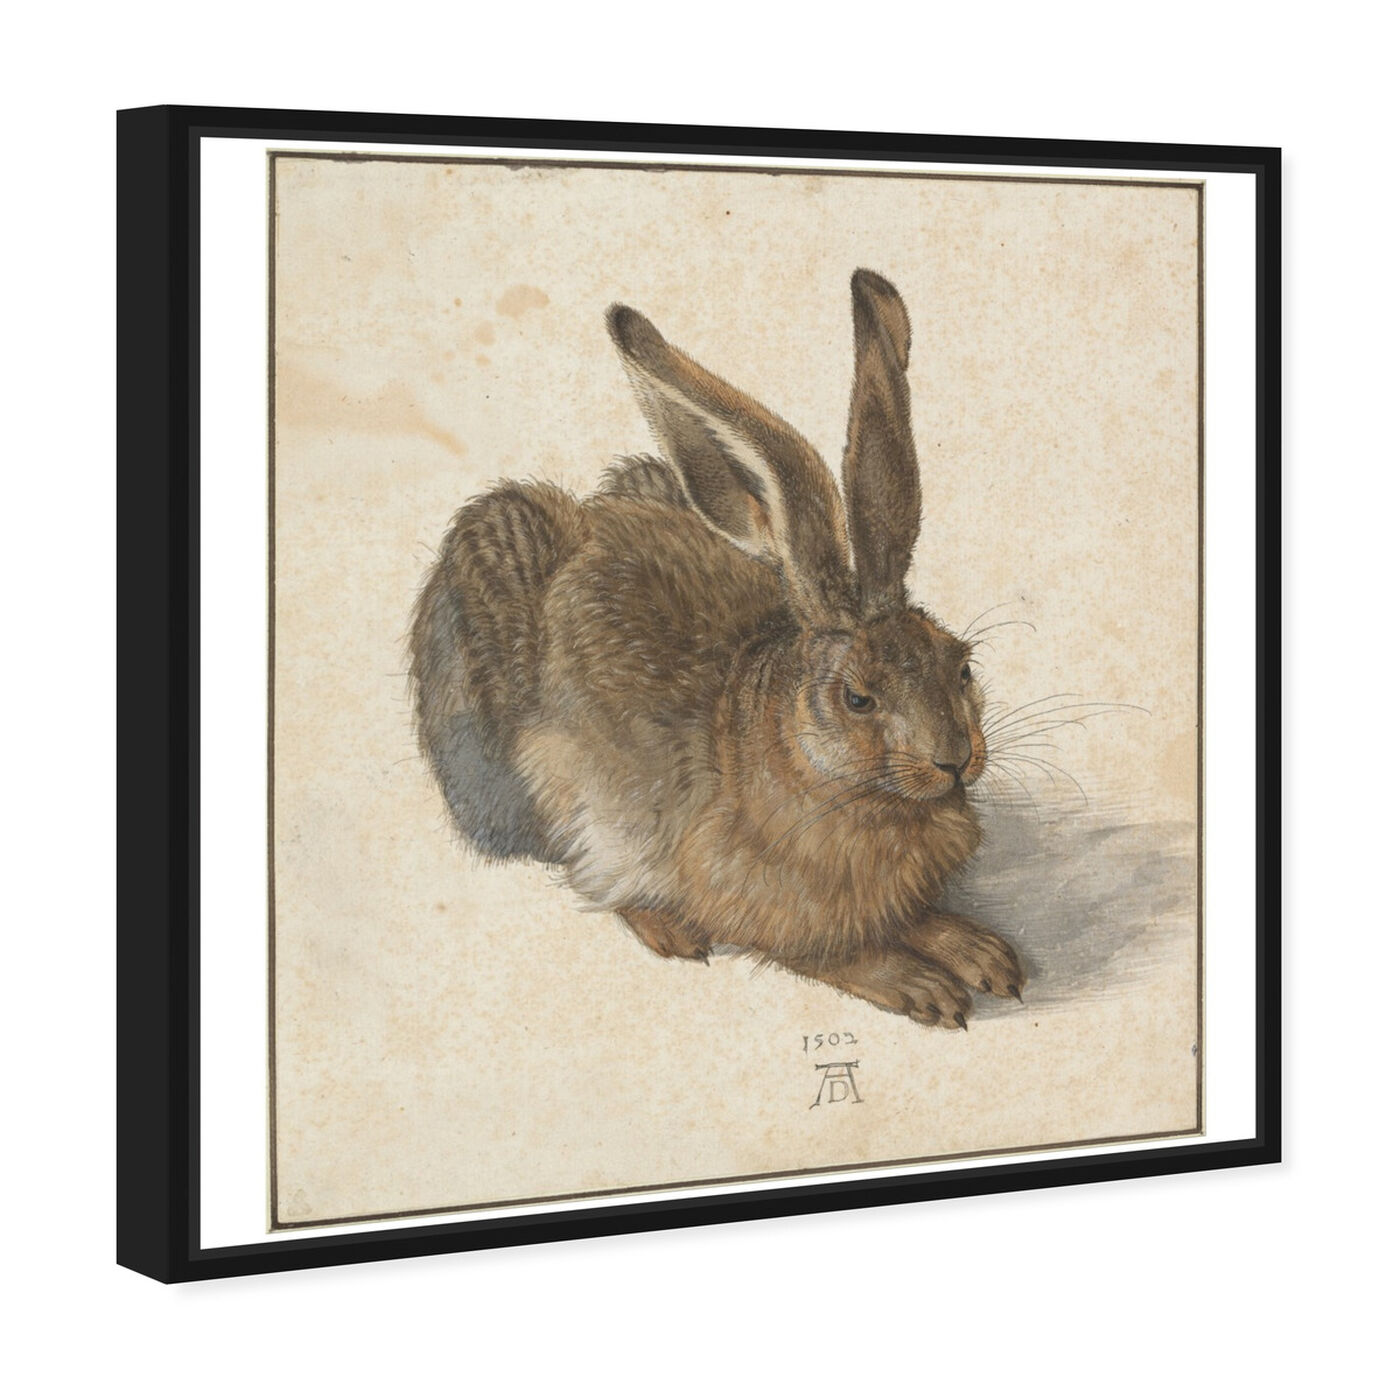 Angled view of Durer - Hare featuring animals and farm animals art.